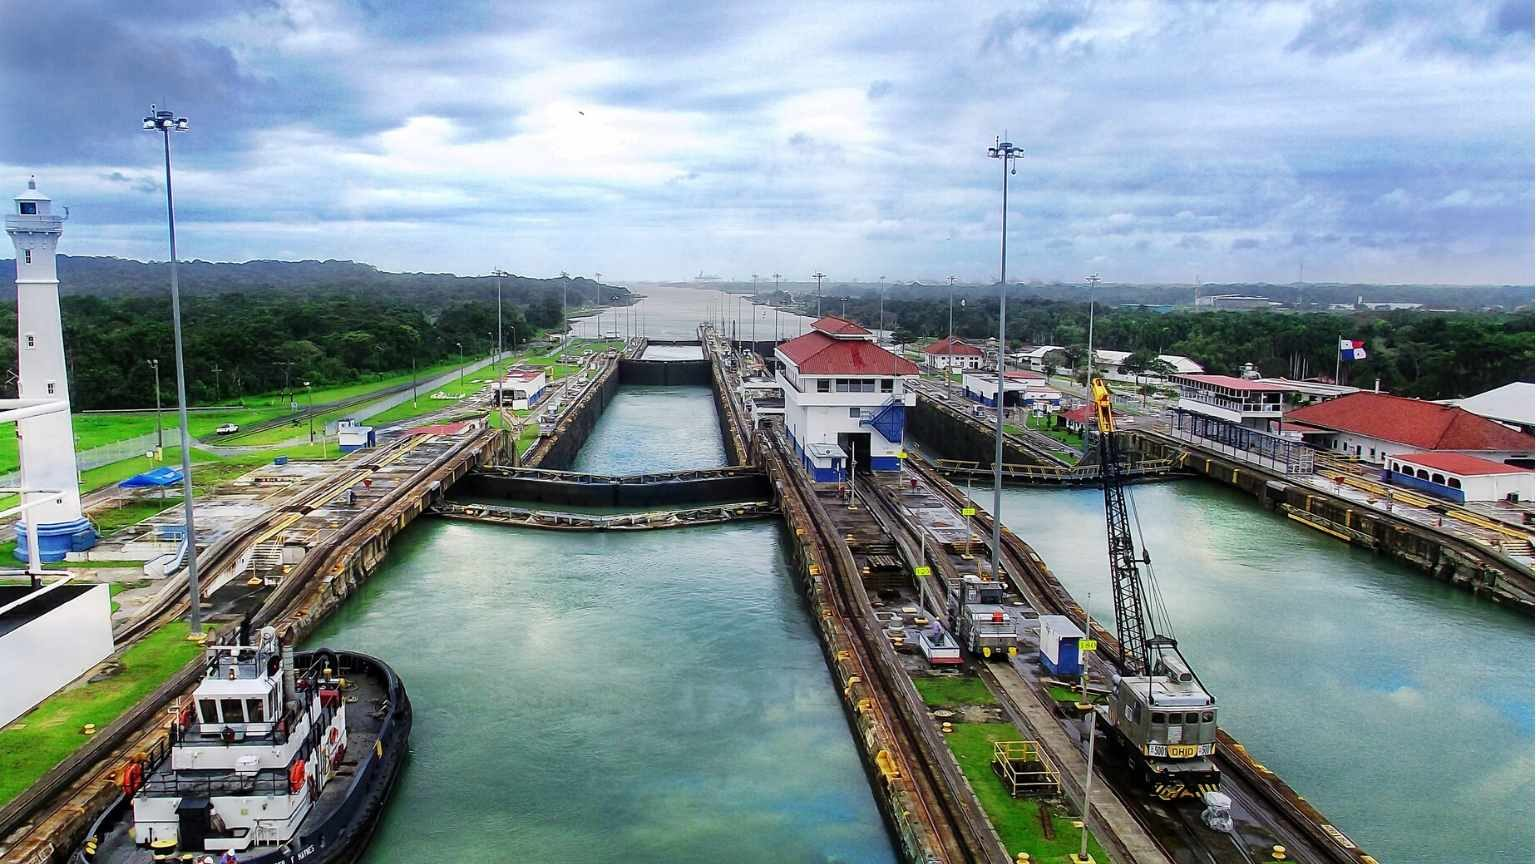 View from above of the panama canal